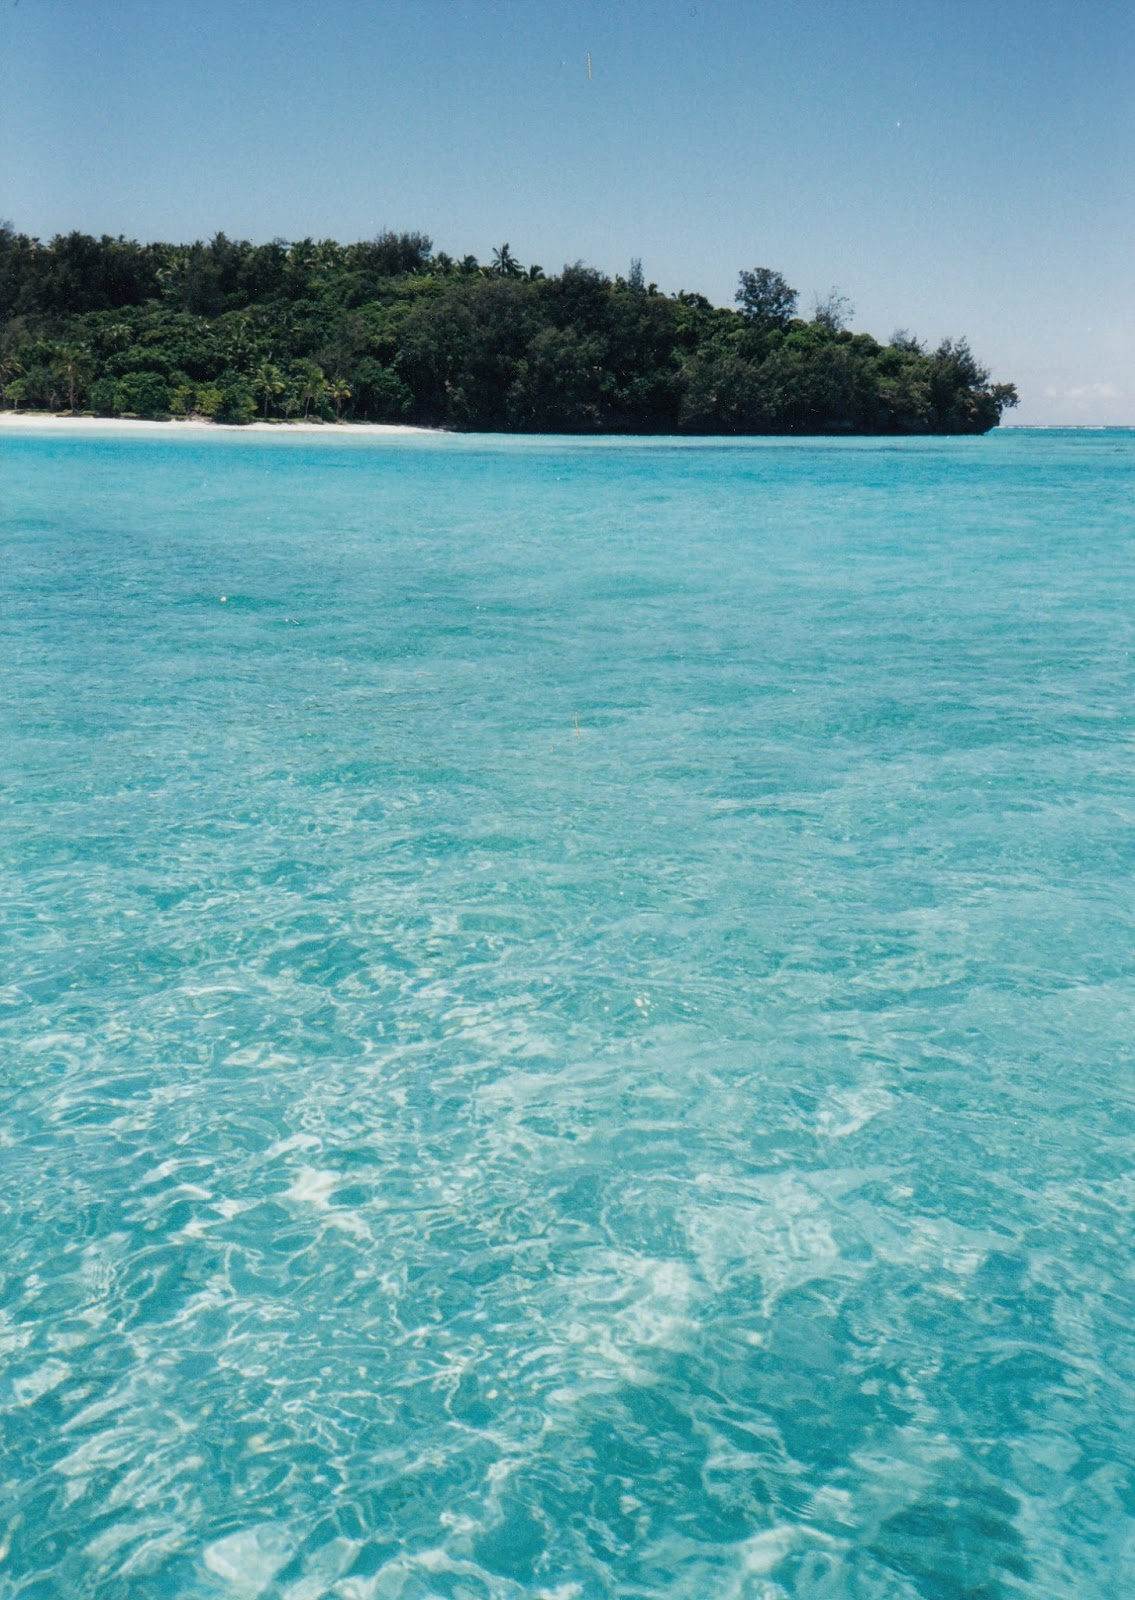 Tonga travel experiences include the most stunning blue of the Pacific Ocean